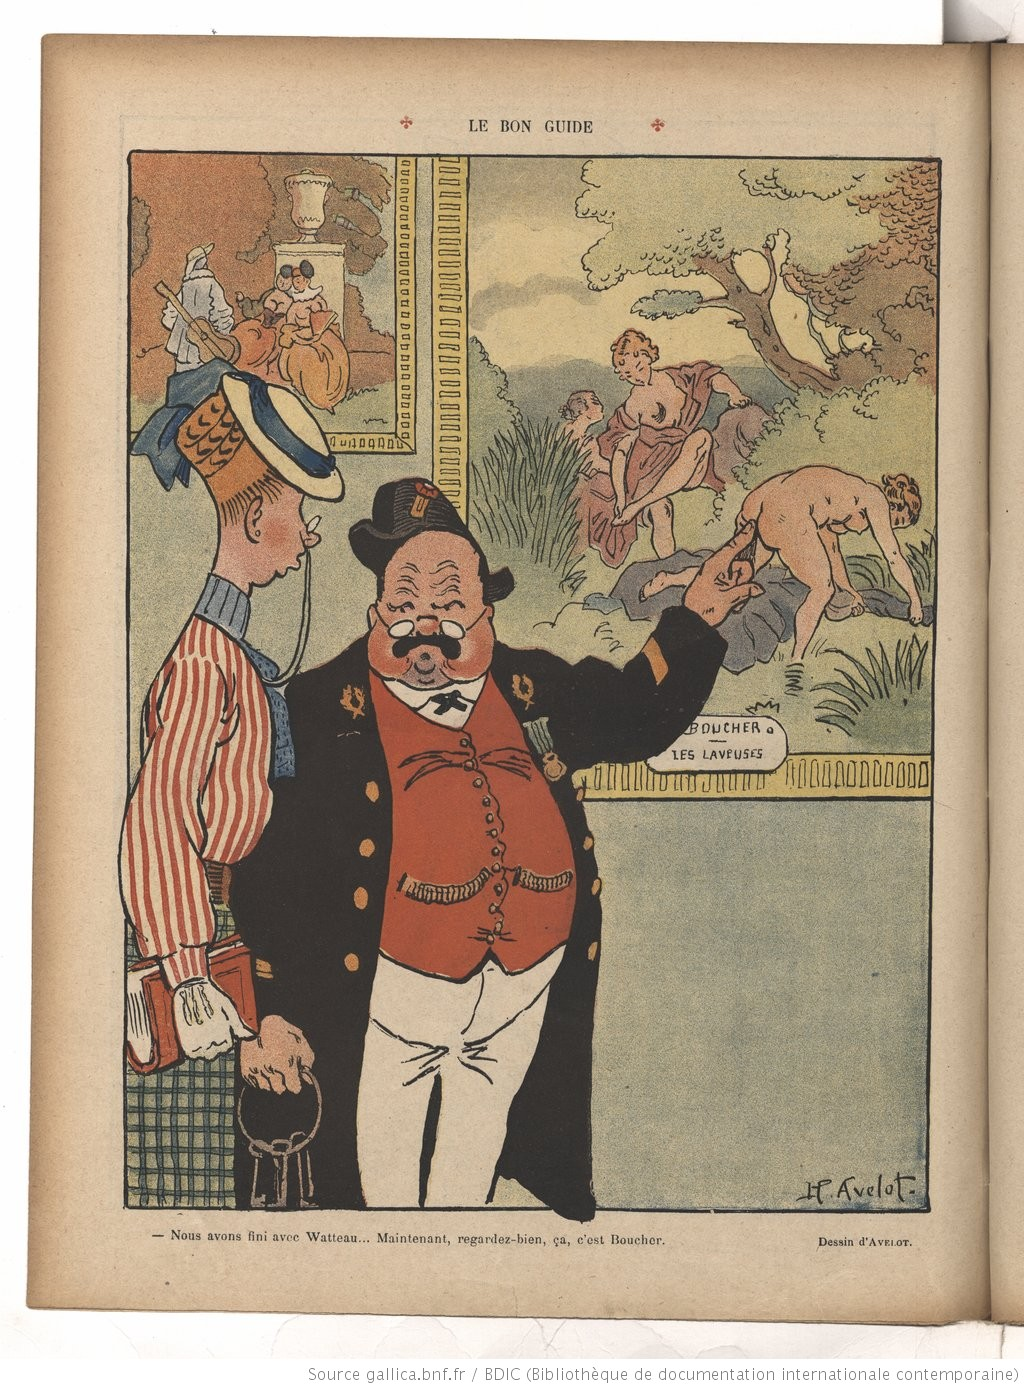 Henri Avelot Le Rire, 17 October 1908 Gallica